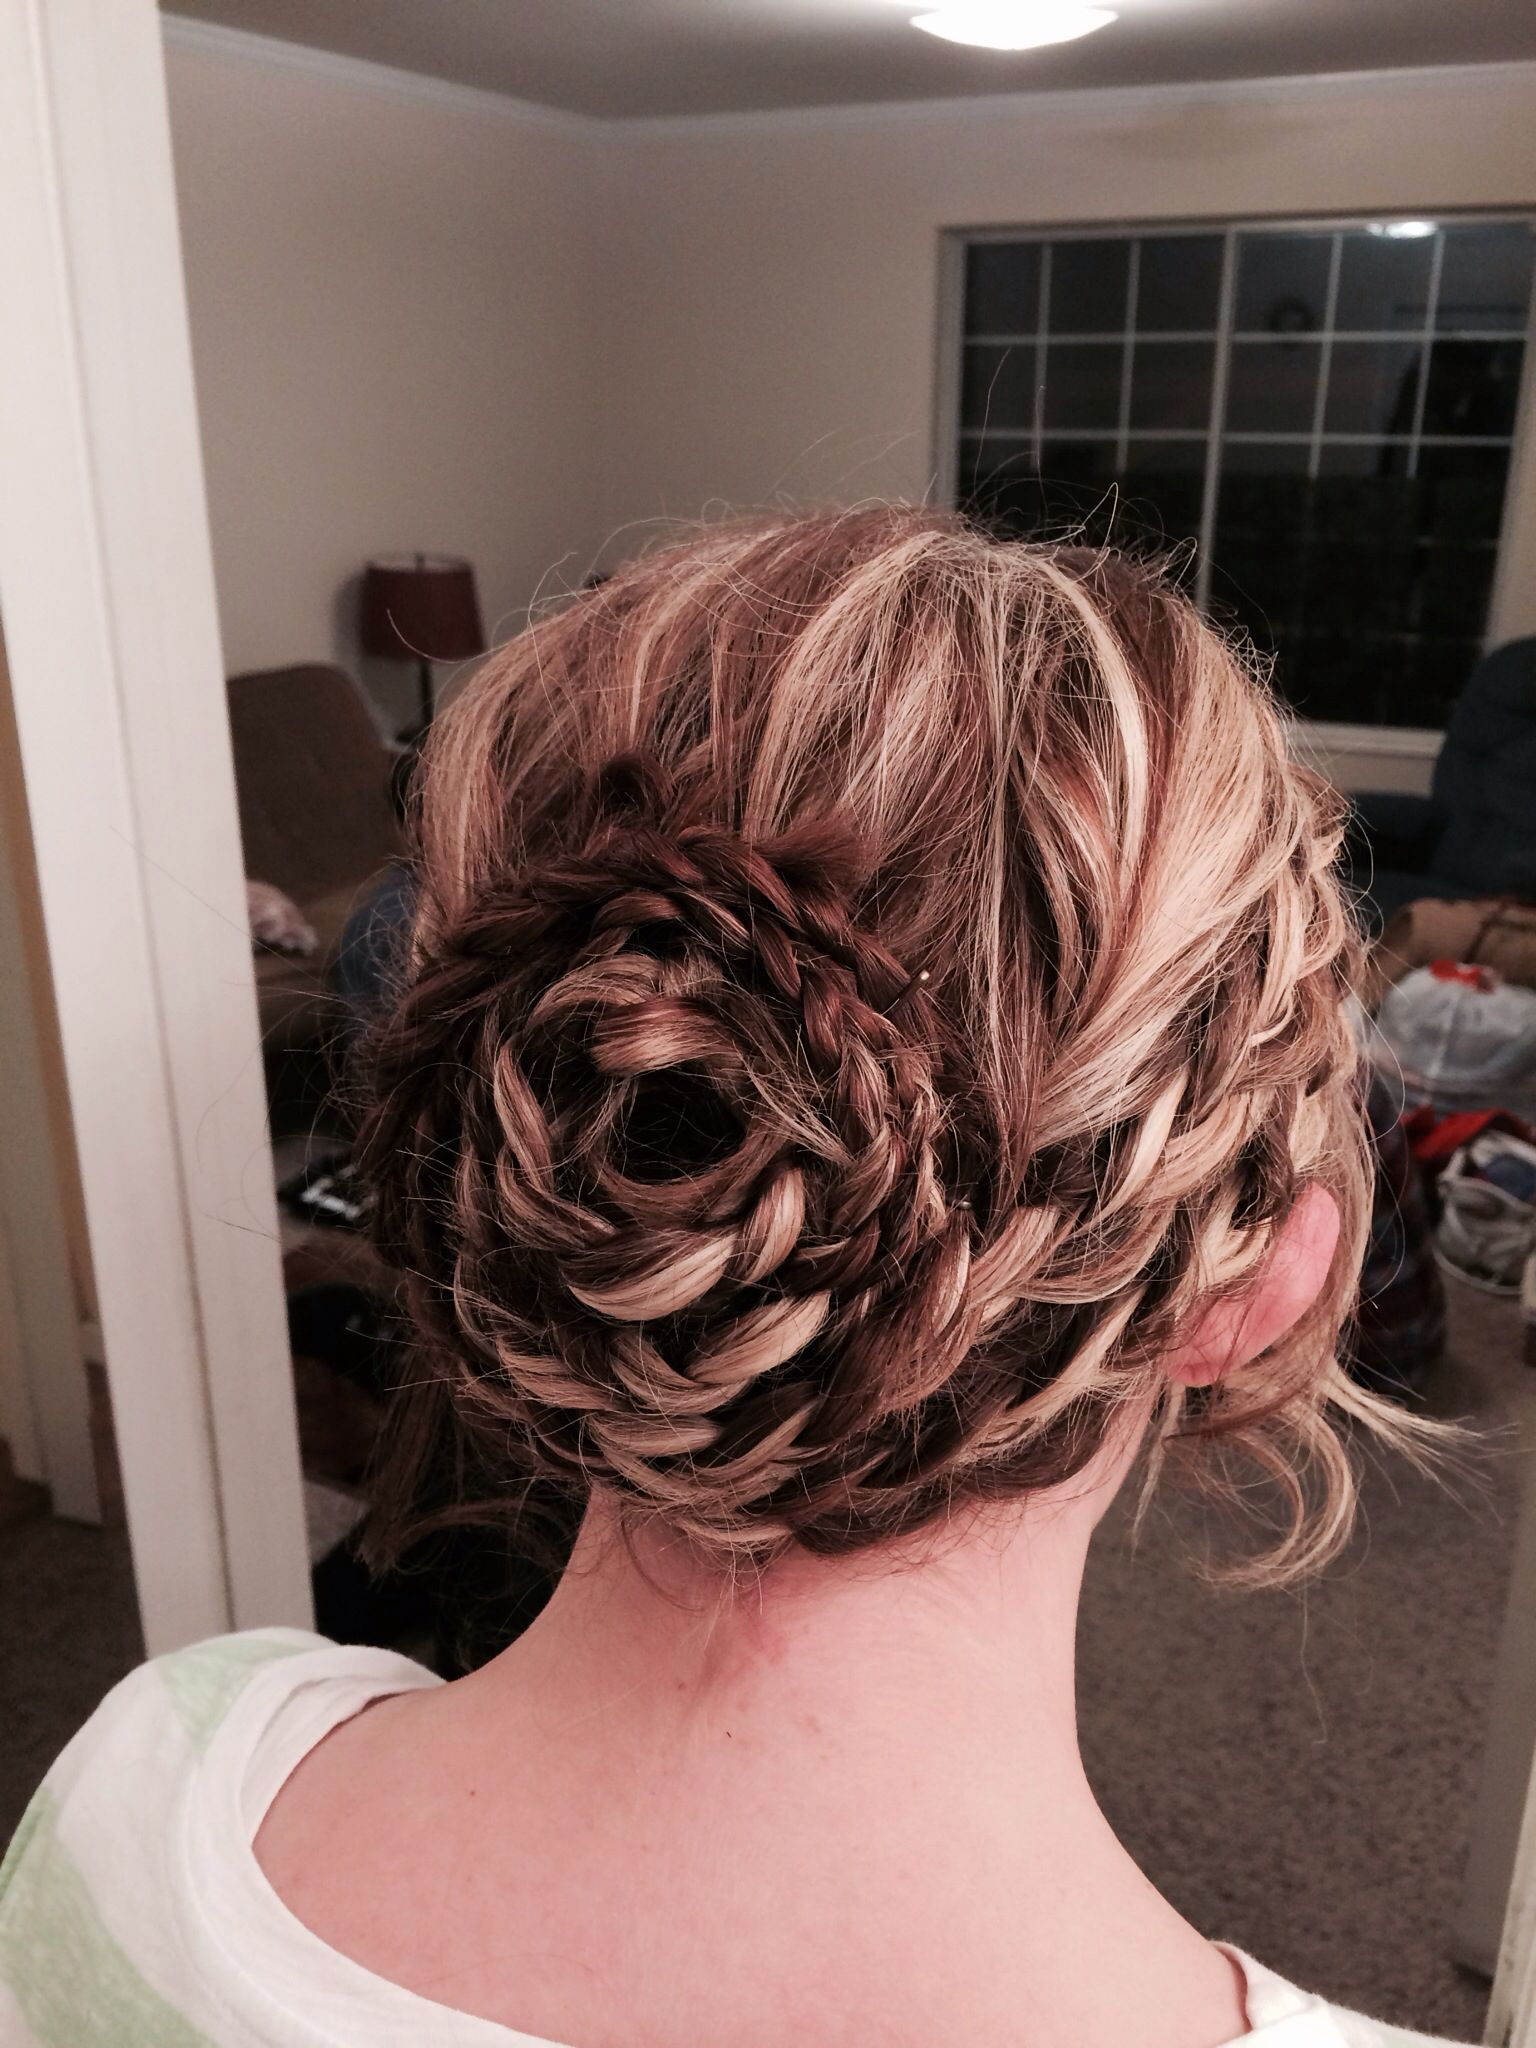 Braided rose bun gorgeous easy wedding updo or great for formal